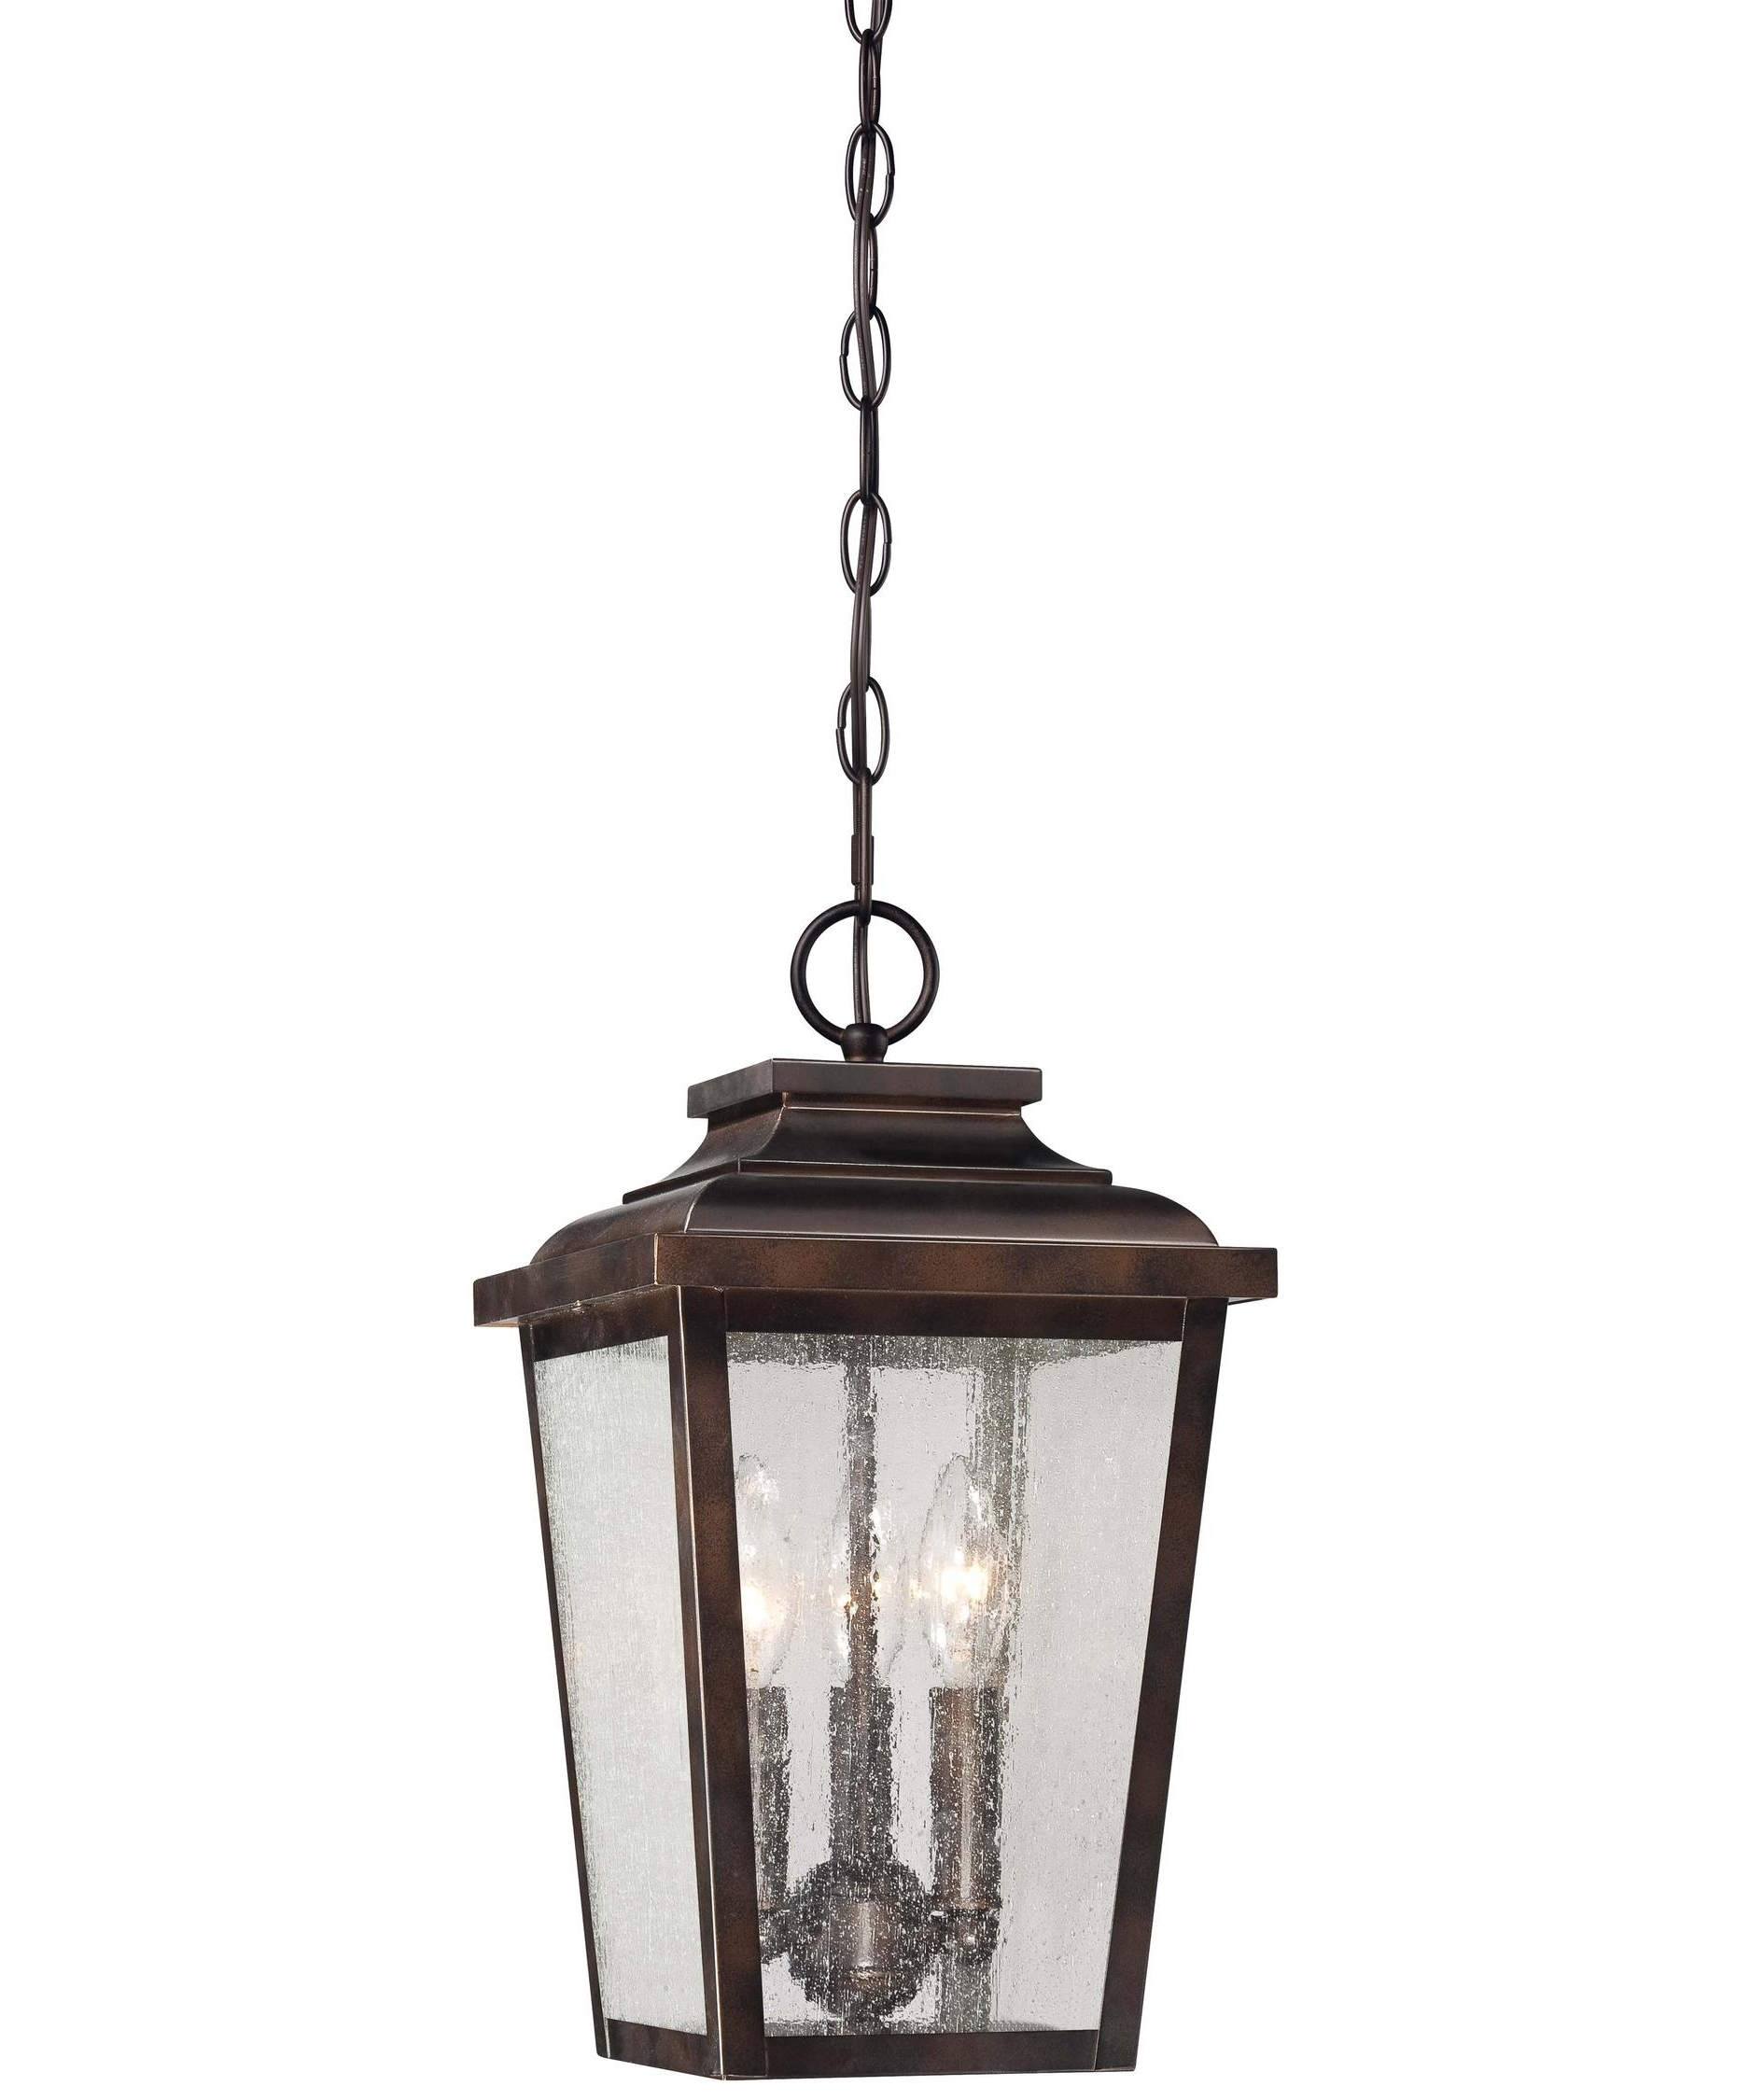 Minka Lavery 72174 Irvington Manor 9 Inch Wide 3 Light Outdoor Pertaining To Well Liked Modern Outdoor Hanging Lights (View 9 of 20)